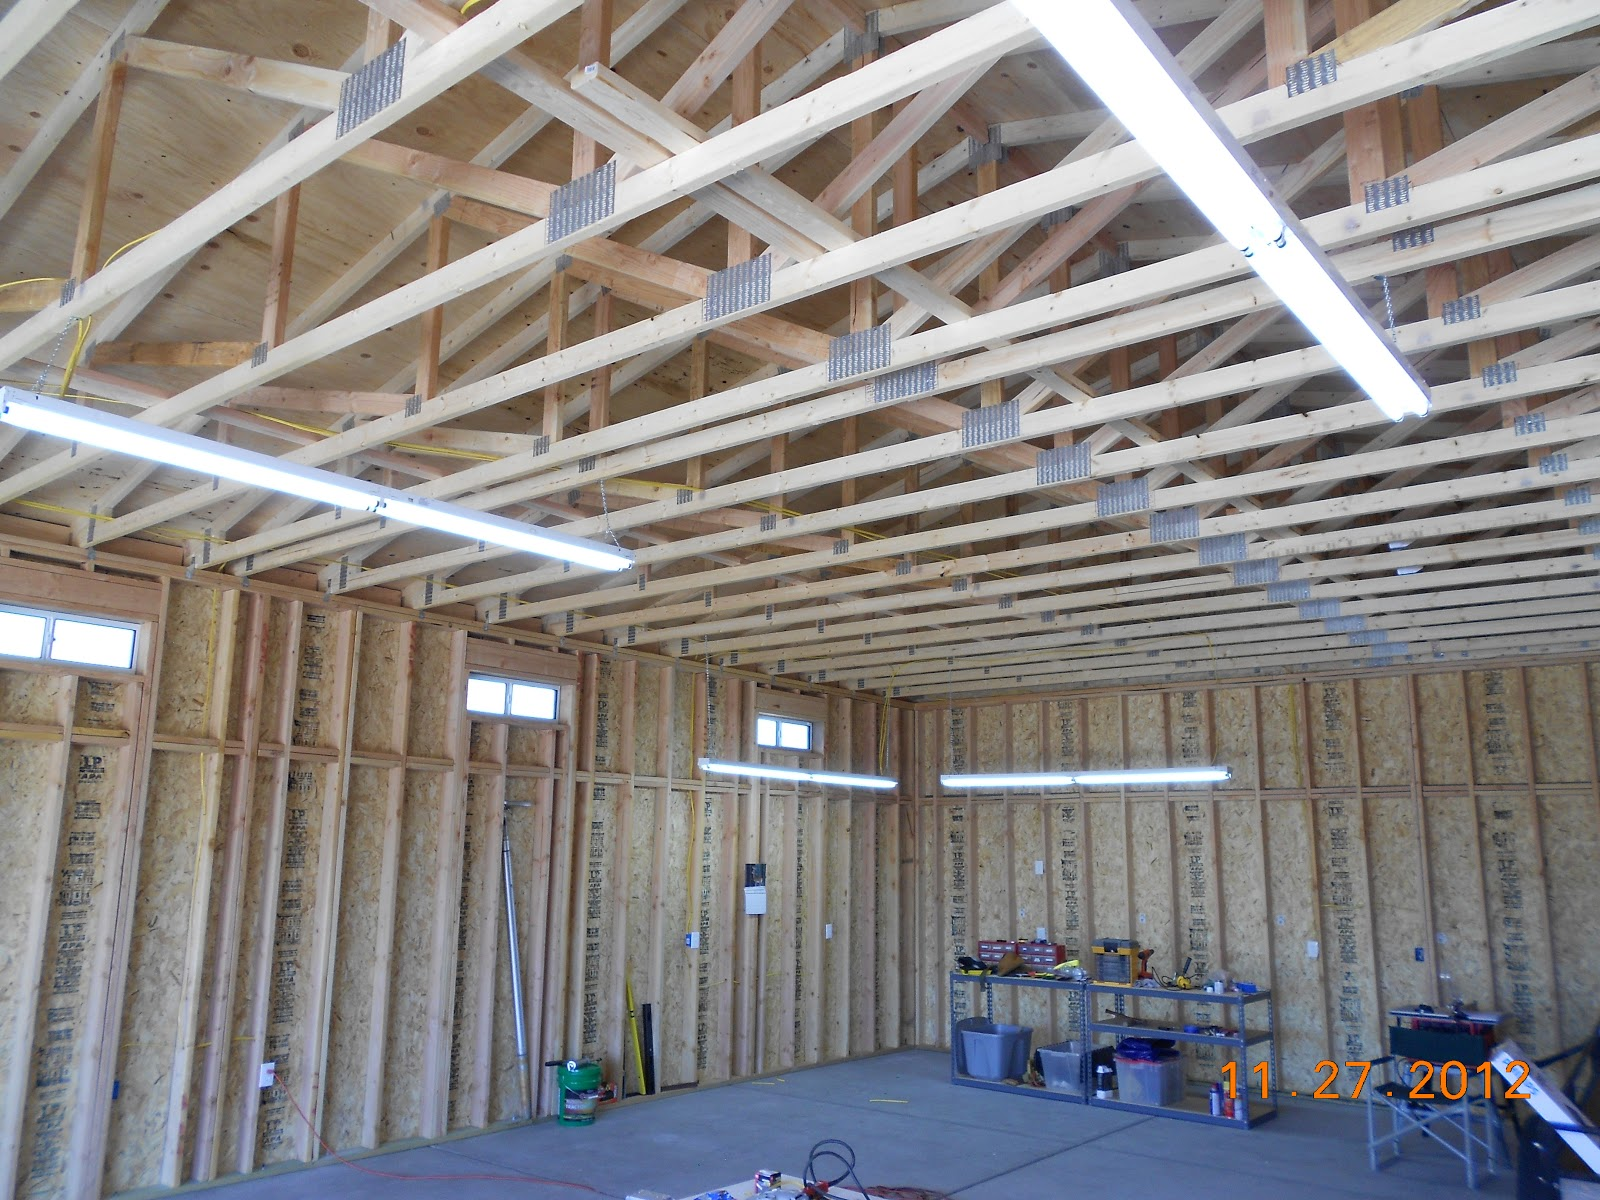 The next step in your garage project, is to remove old drywall and insulation. This can be a lengthy process depending on the size of your garage